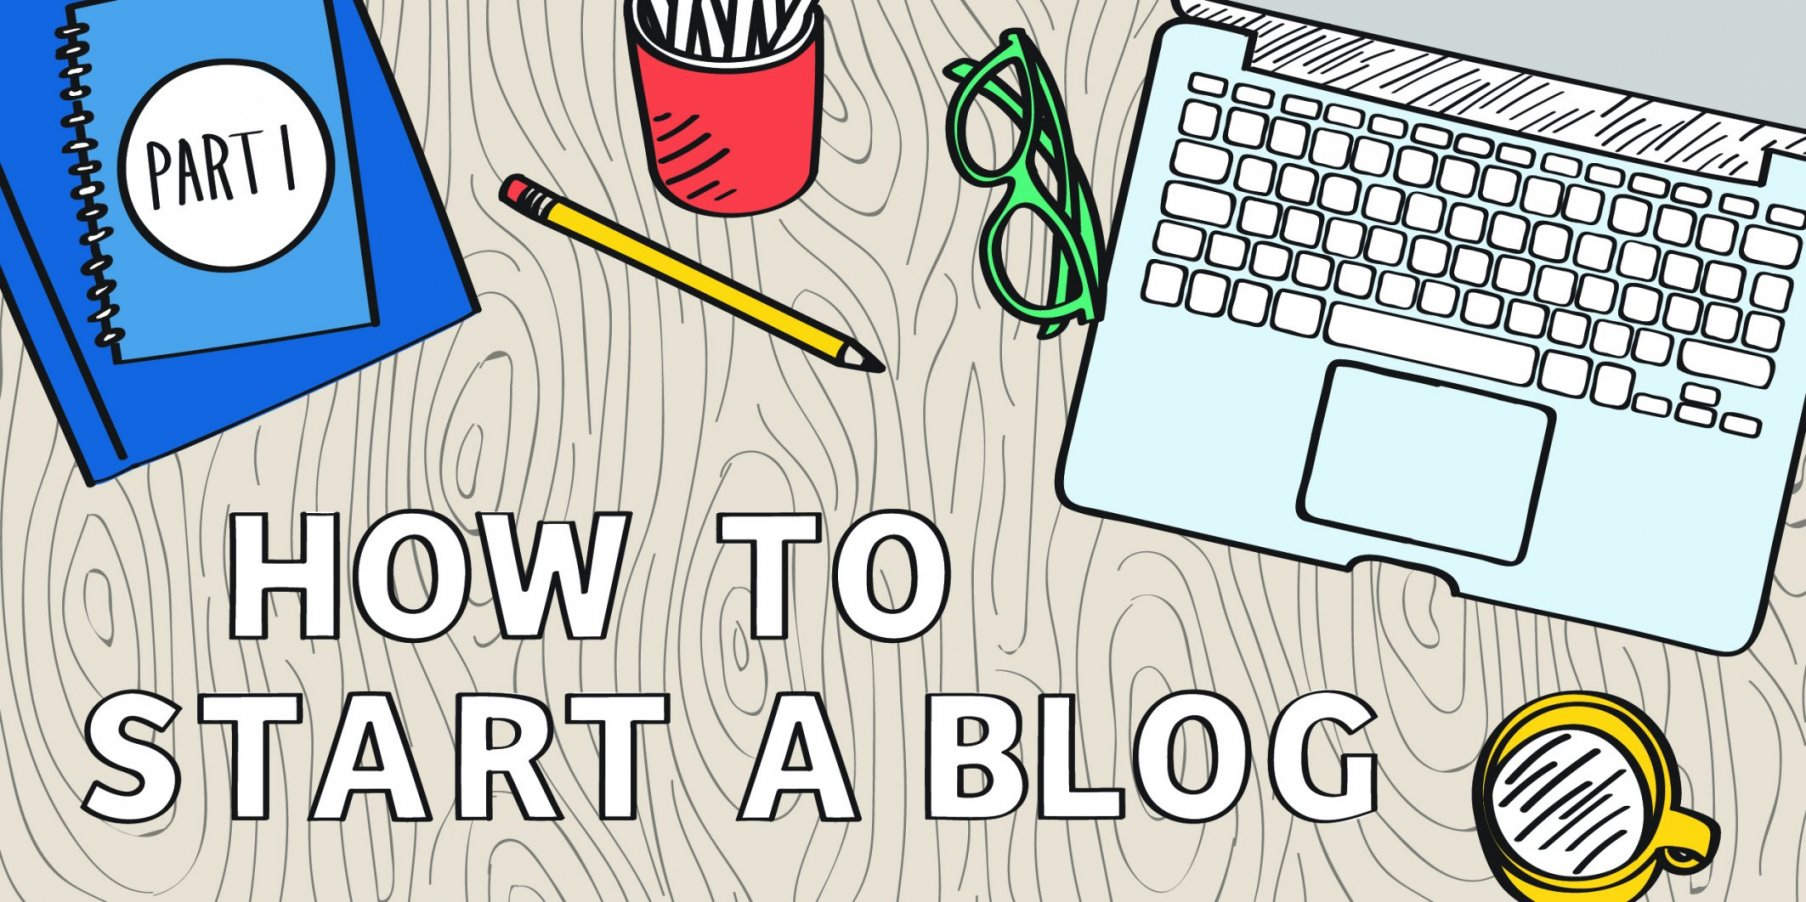 How to Start a Blog: Part 1 - Pick a Domain Name